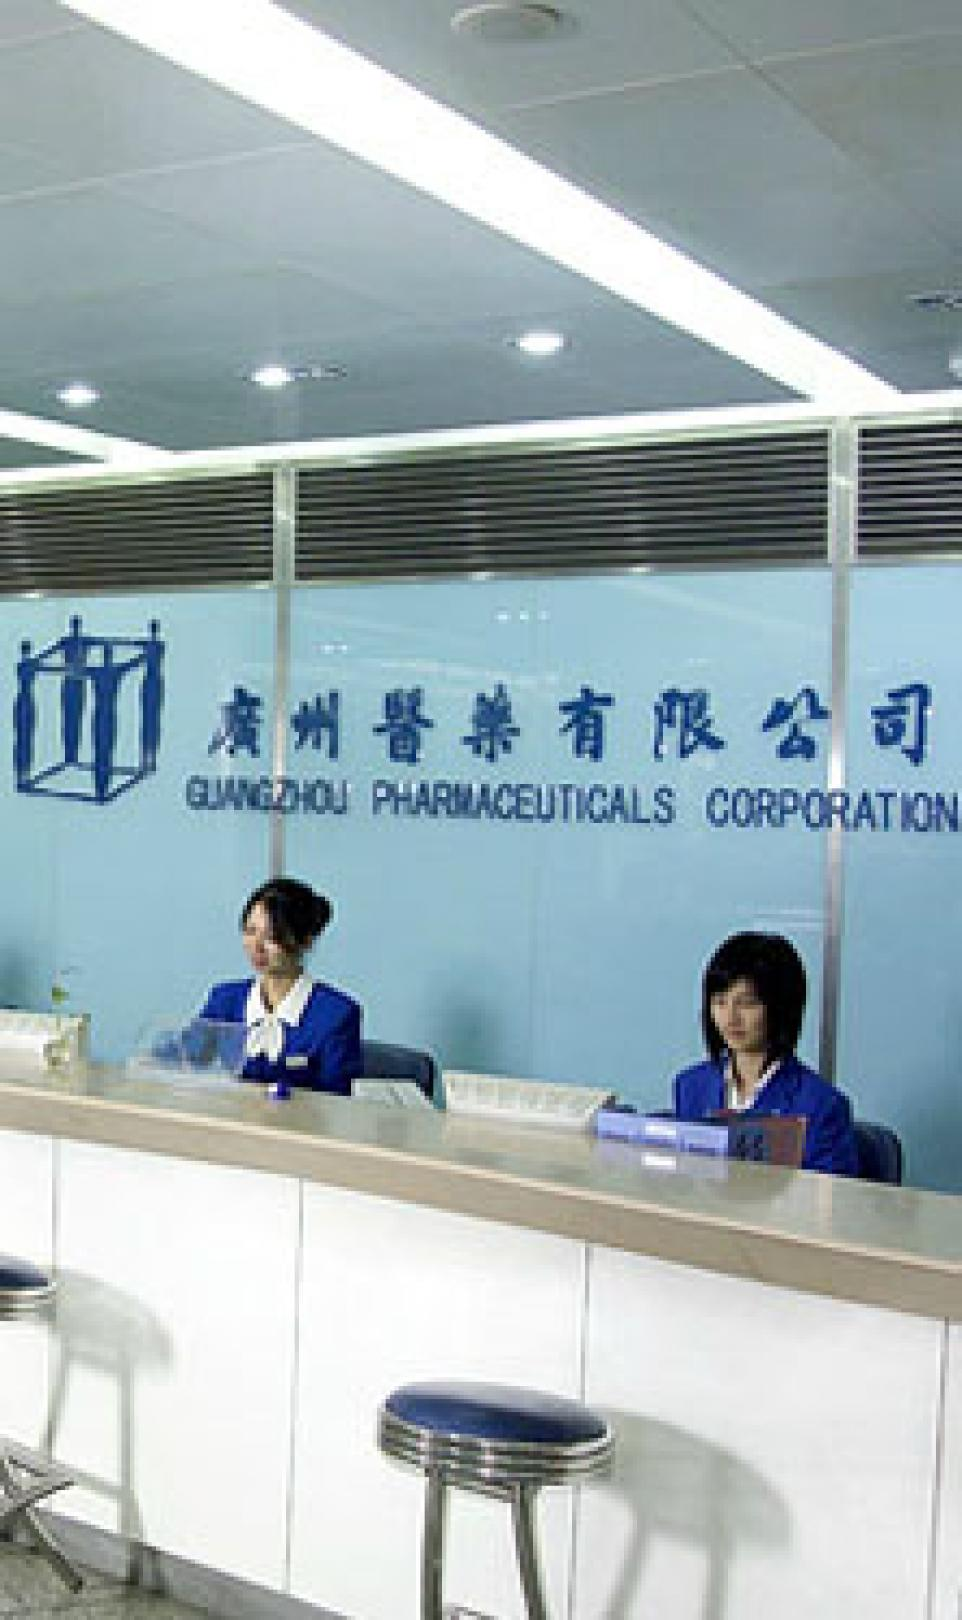 Two female receptionists in blue uniforms, pictured in the reception area of the Guangzhou Pharmaceuticals Corporation